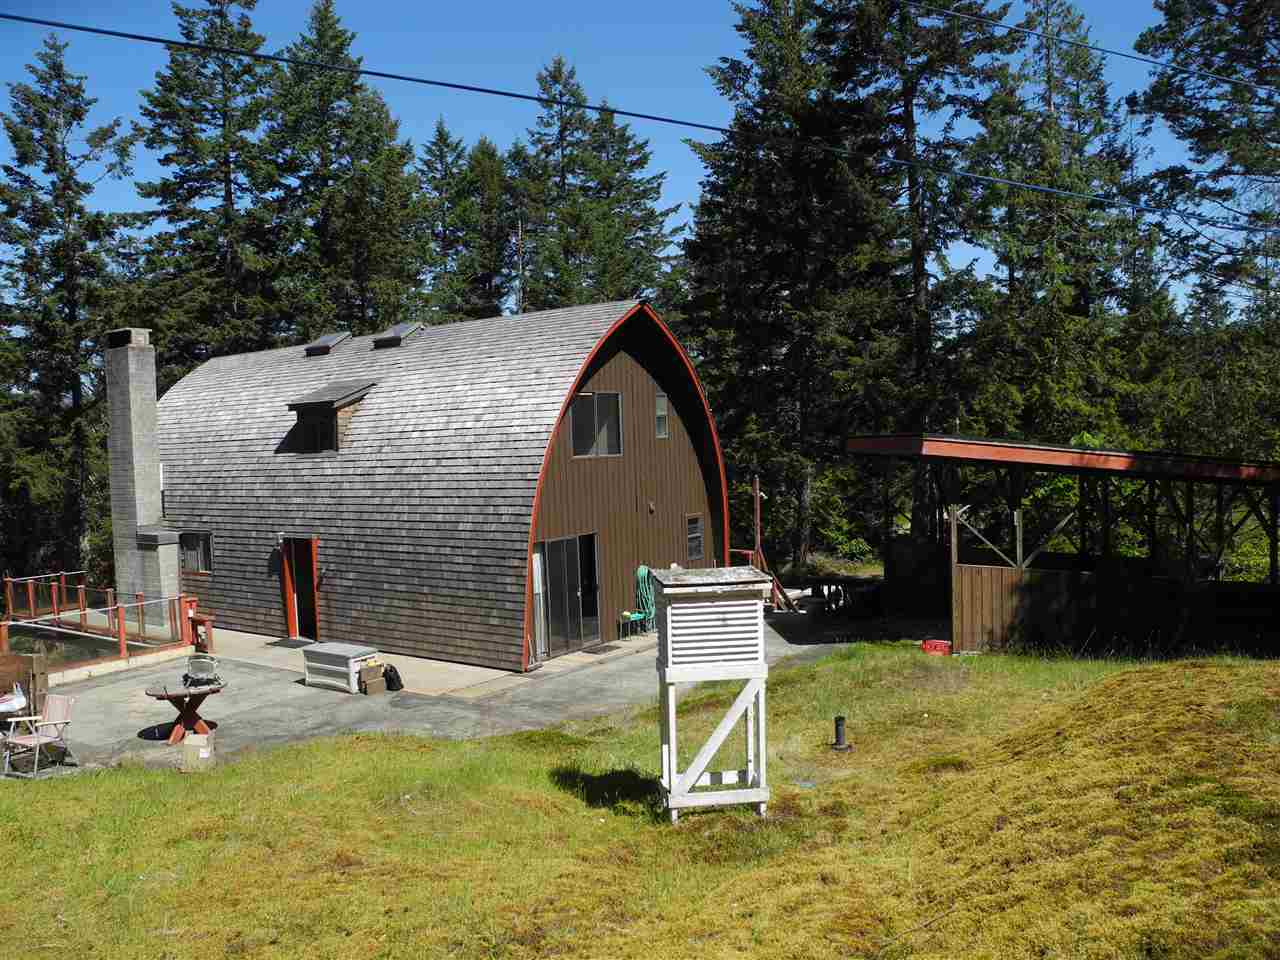 Photo 3: 4436 MCLINTOCK Road in Pender Harbour: Pender Harbour Egmont House for sale (Sunshine Coast)  : MLS(r) # R2068891